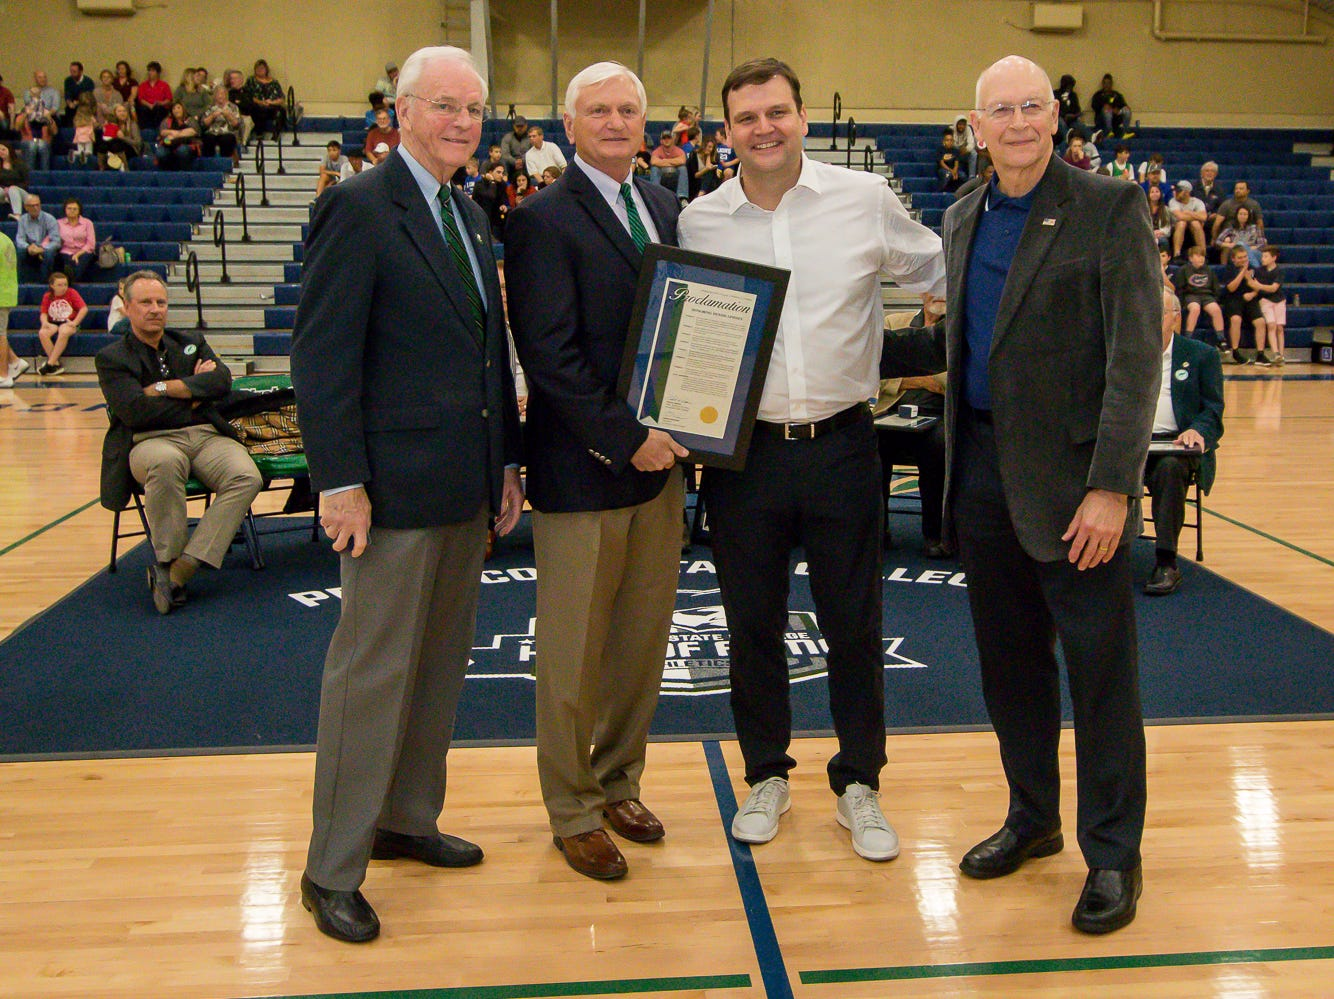 Dennis Lindsey, second from right, is honored during Pensacola State College's inaugural Athletics Hall of Fame induction ceremony on Saturday, February 16, 2019, in the Hartsell Arena on the main campus. He coached both men's and women's basketball at PSC in the mid 1990's, before joining the Houston Rockets in 1996. From 2007-12, he was the assistant general manager for the San Antonio Spurs. He has been the general manager for the Utah Jazz since 2012.